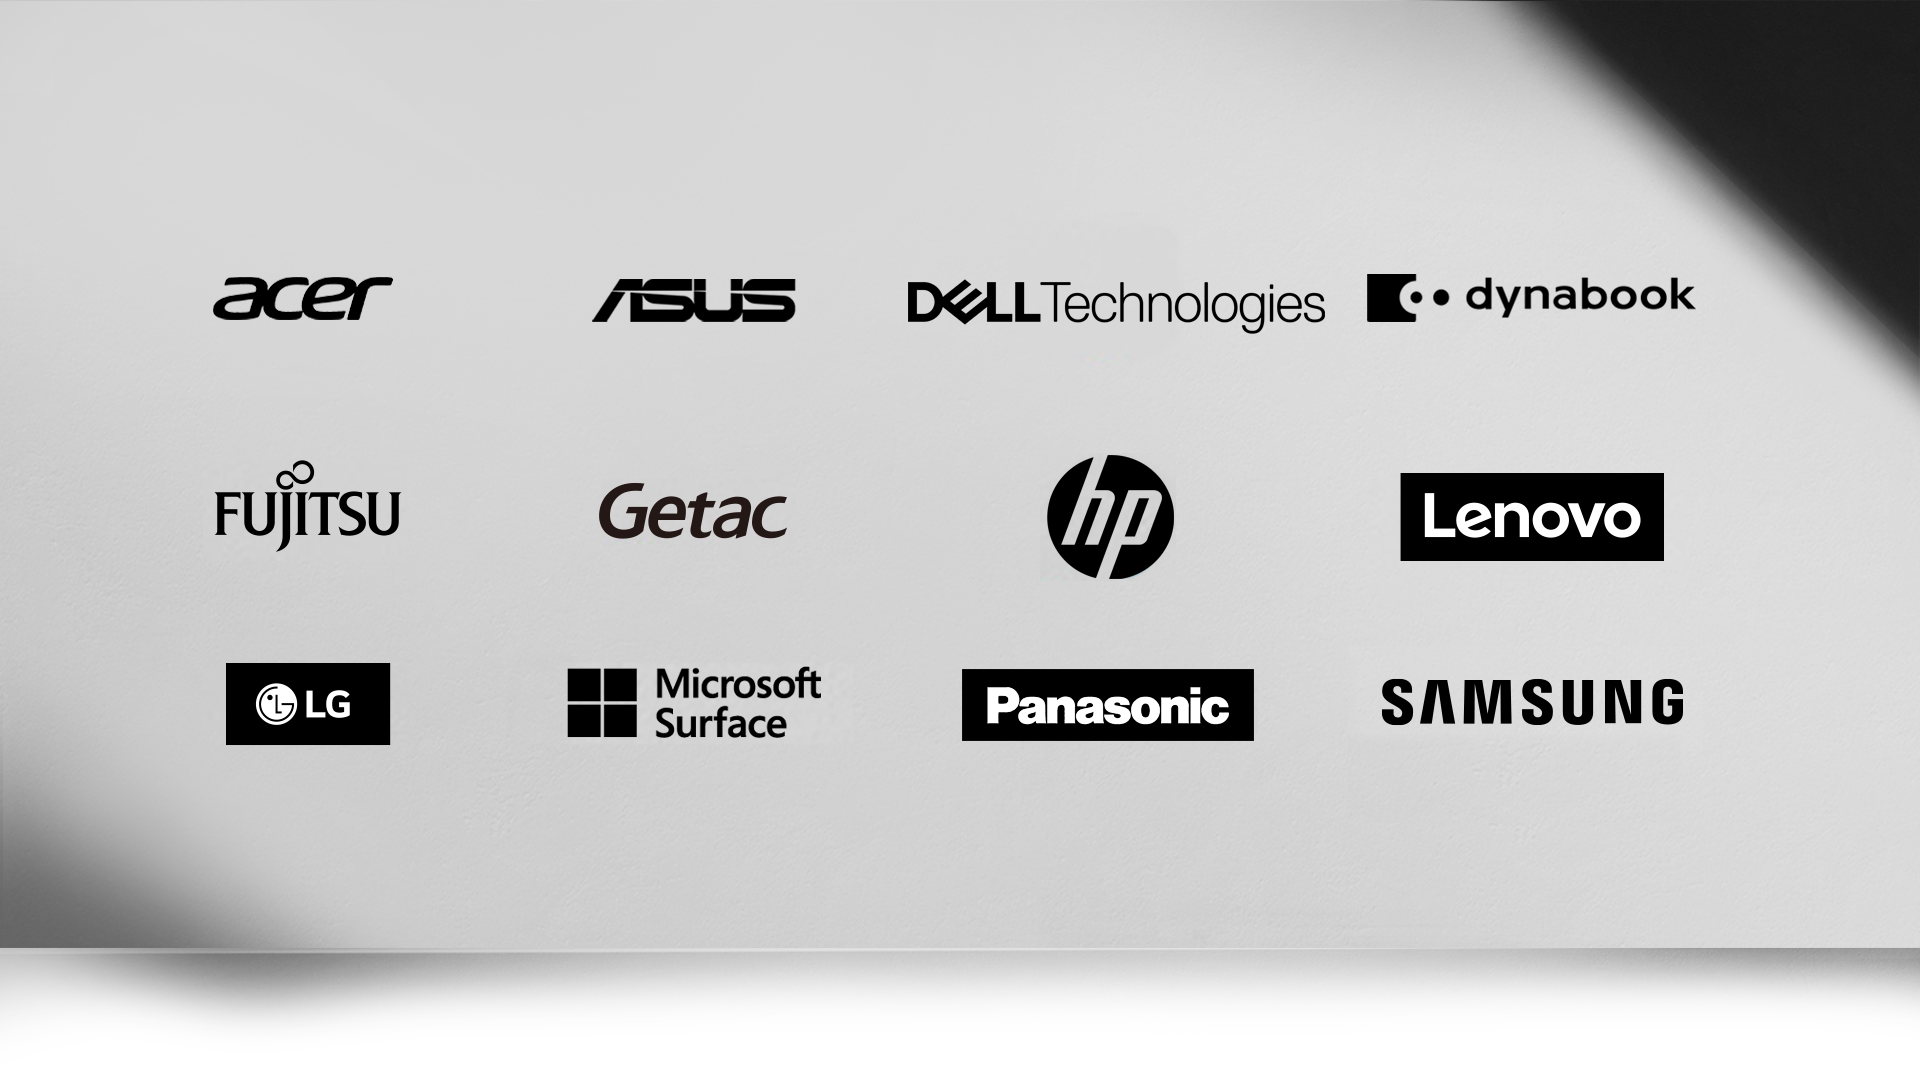 A collection of 12 logos for companies that manufacture Windows PCs